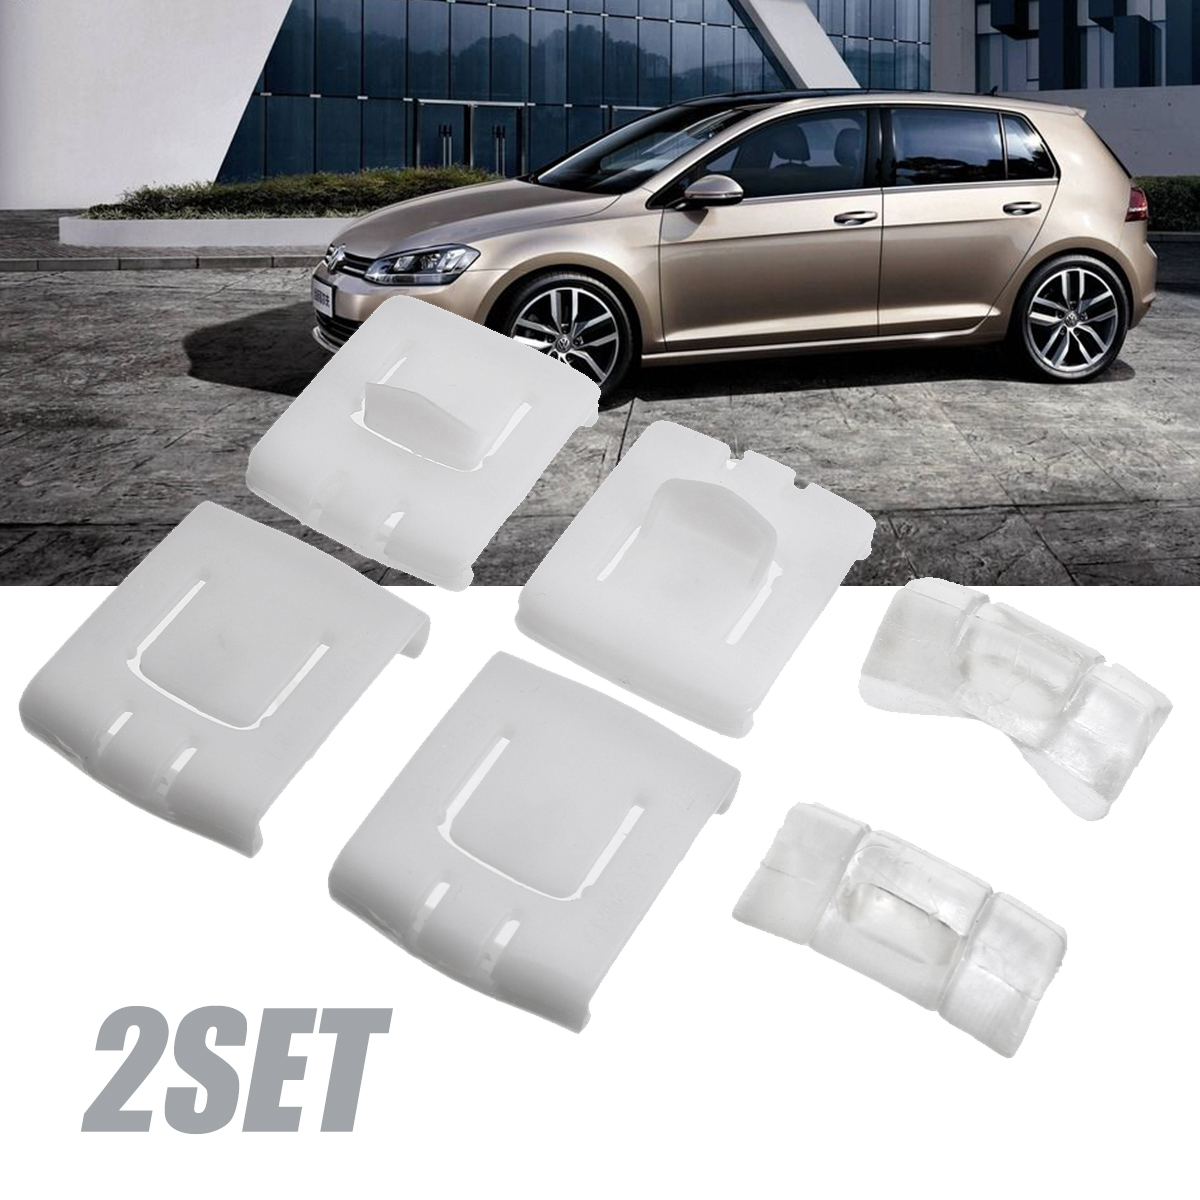 2 Sets 6Pcs Seat Rail Clip Guide Runner Piece 435881203A Plastic Car Seat  Buckle Fastener Clips For VW Golf MK1 MK2 MK3 Corrado-in Auto Fastener &  Clip from ...